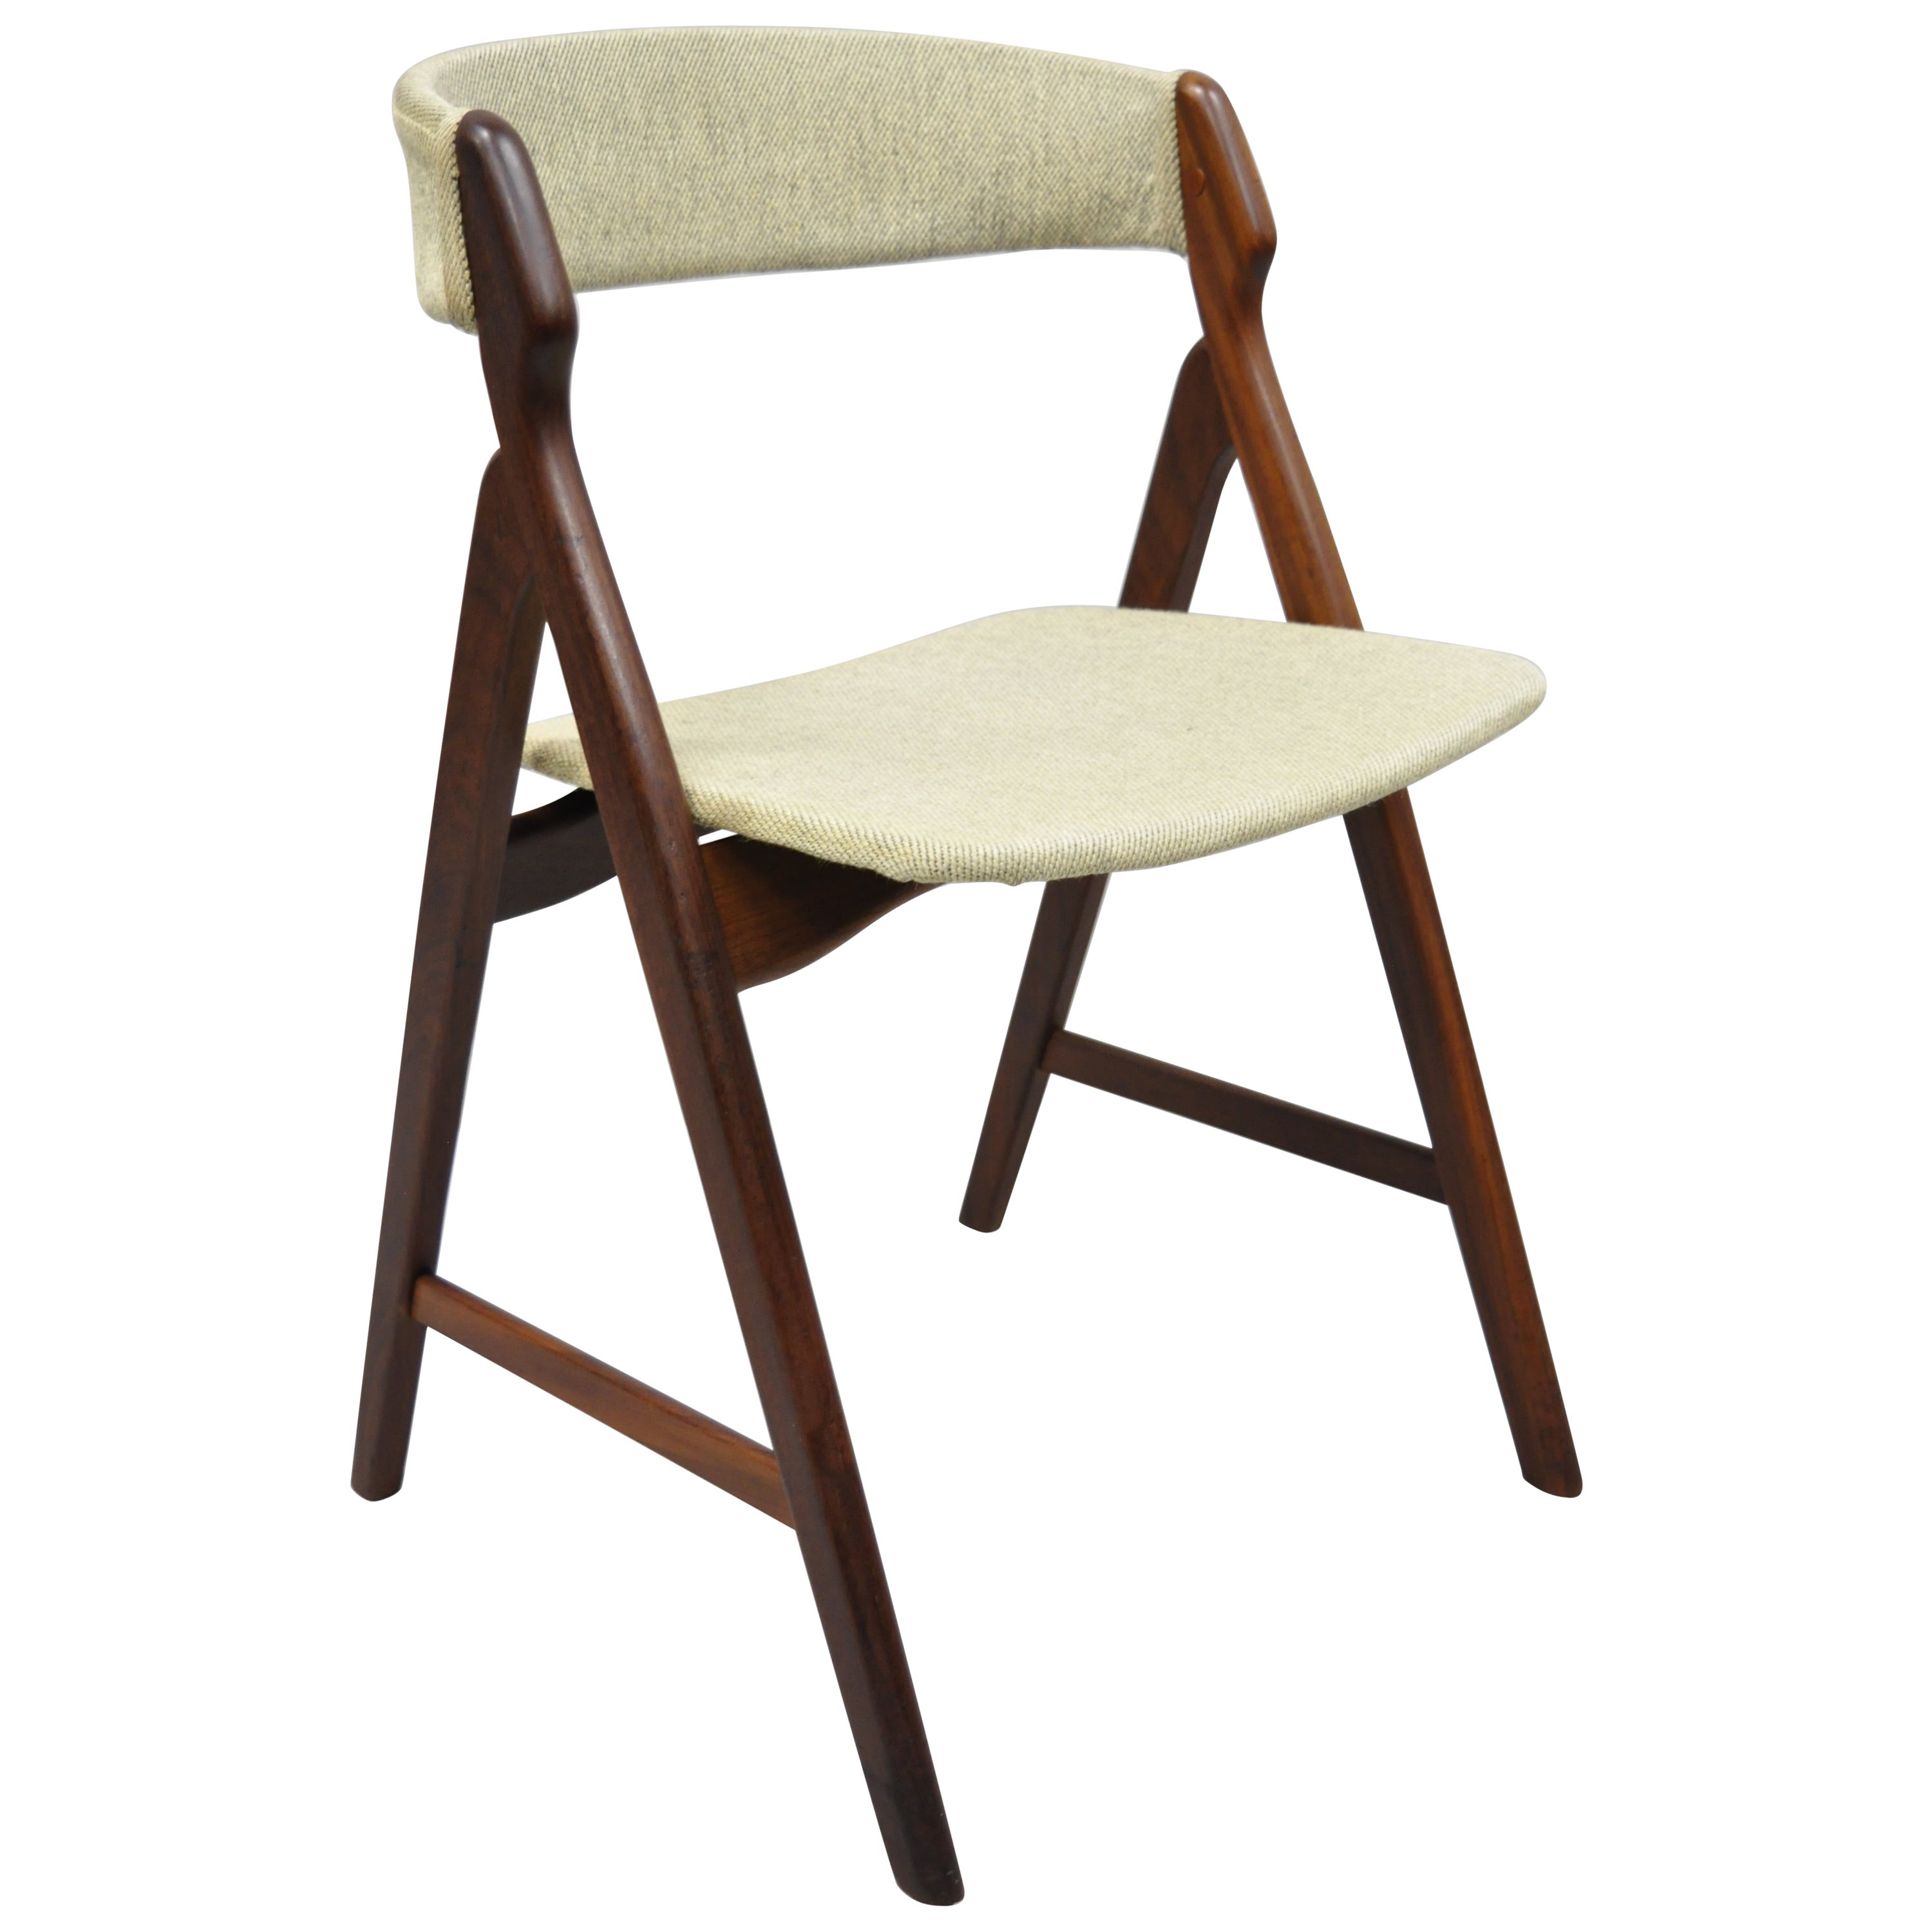 Midcentury Danish Modern Teak A-Frame Dining Chair by T.H. Harlev Farstrup